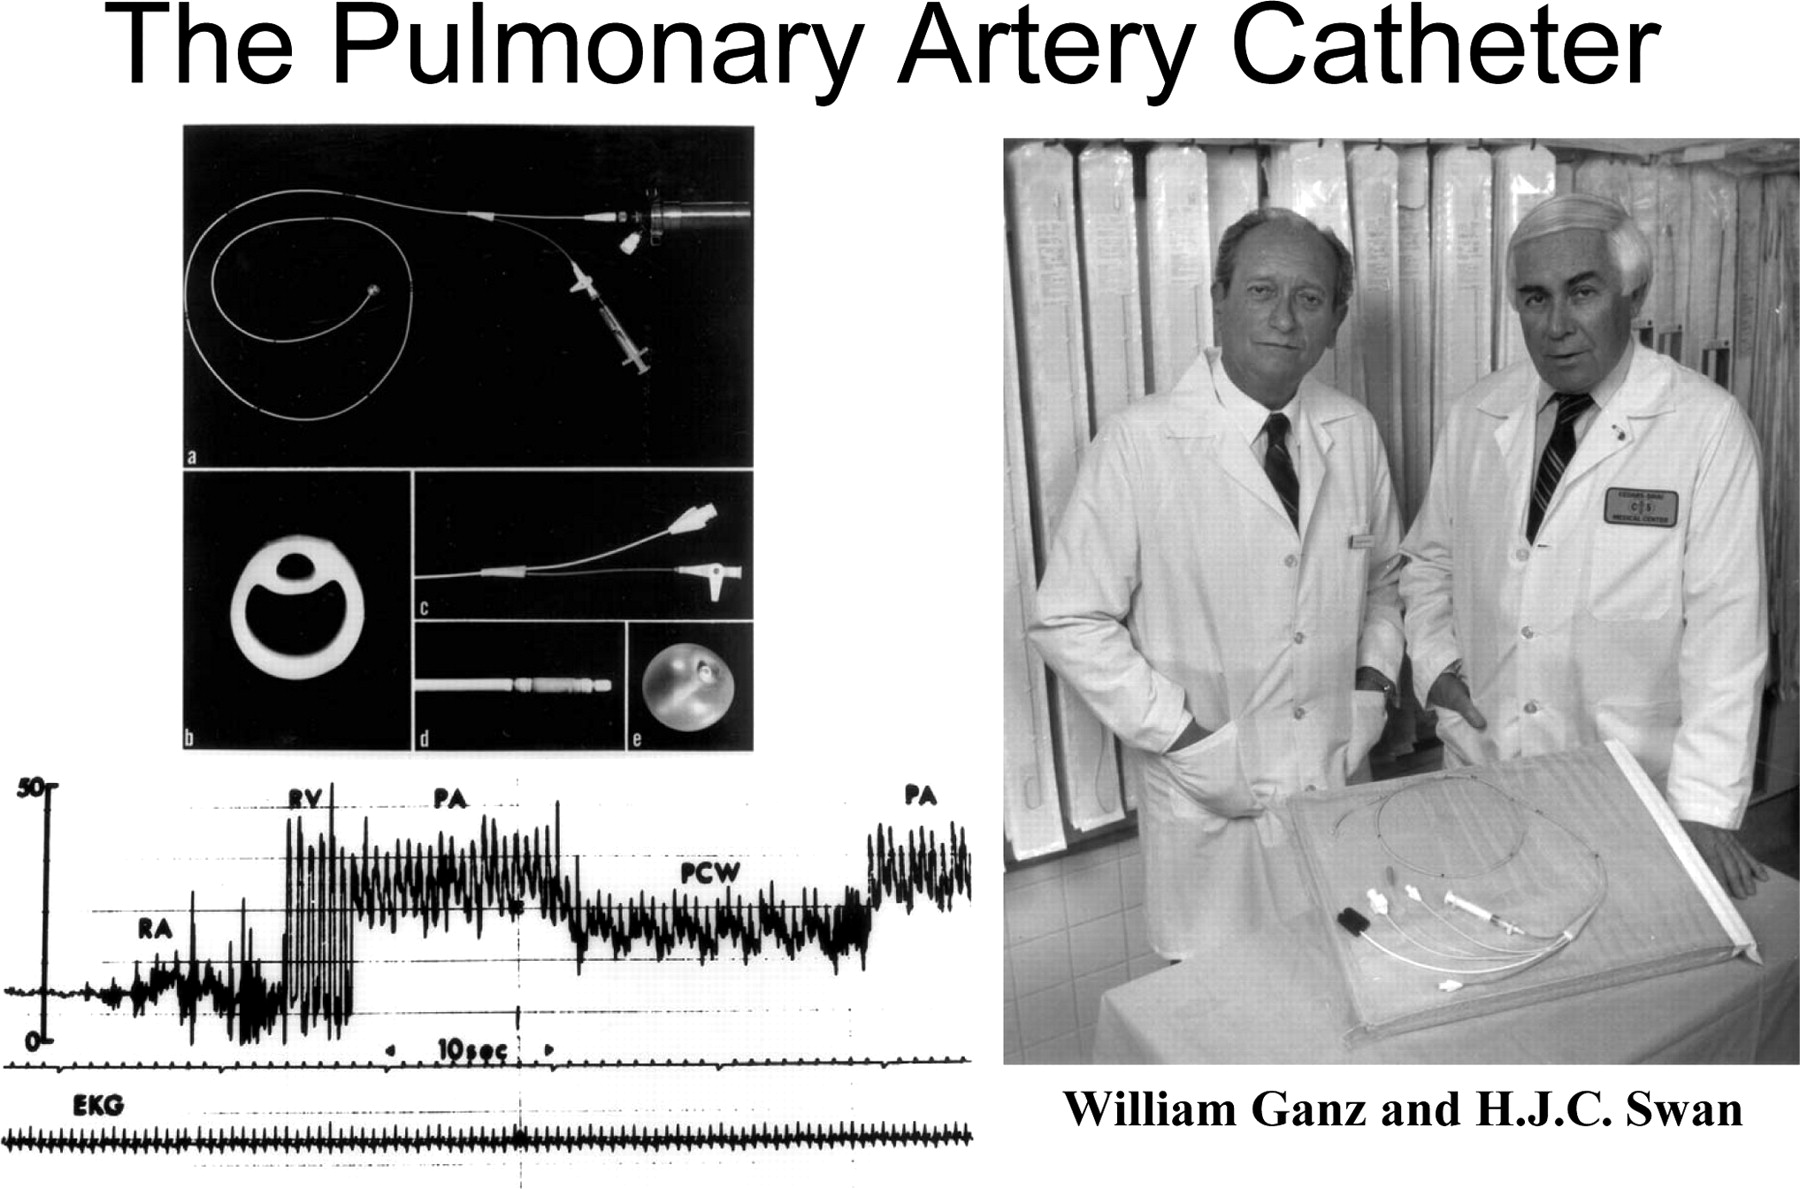 The Pulmolary Artery Catheter